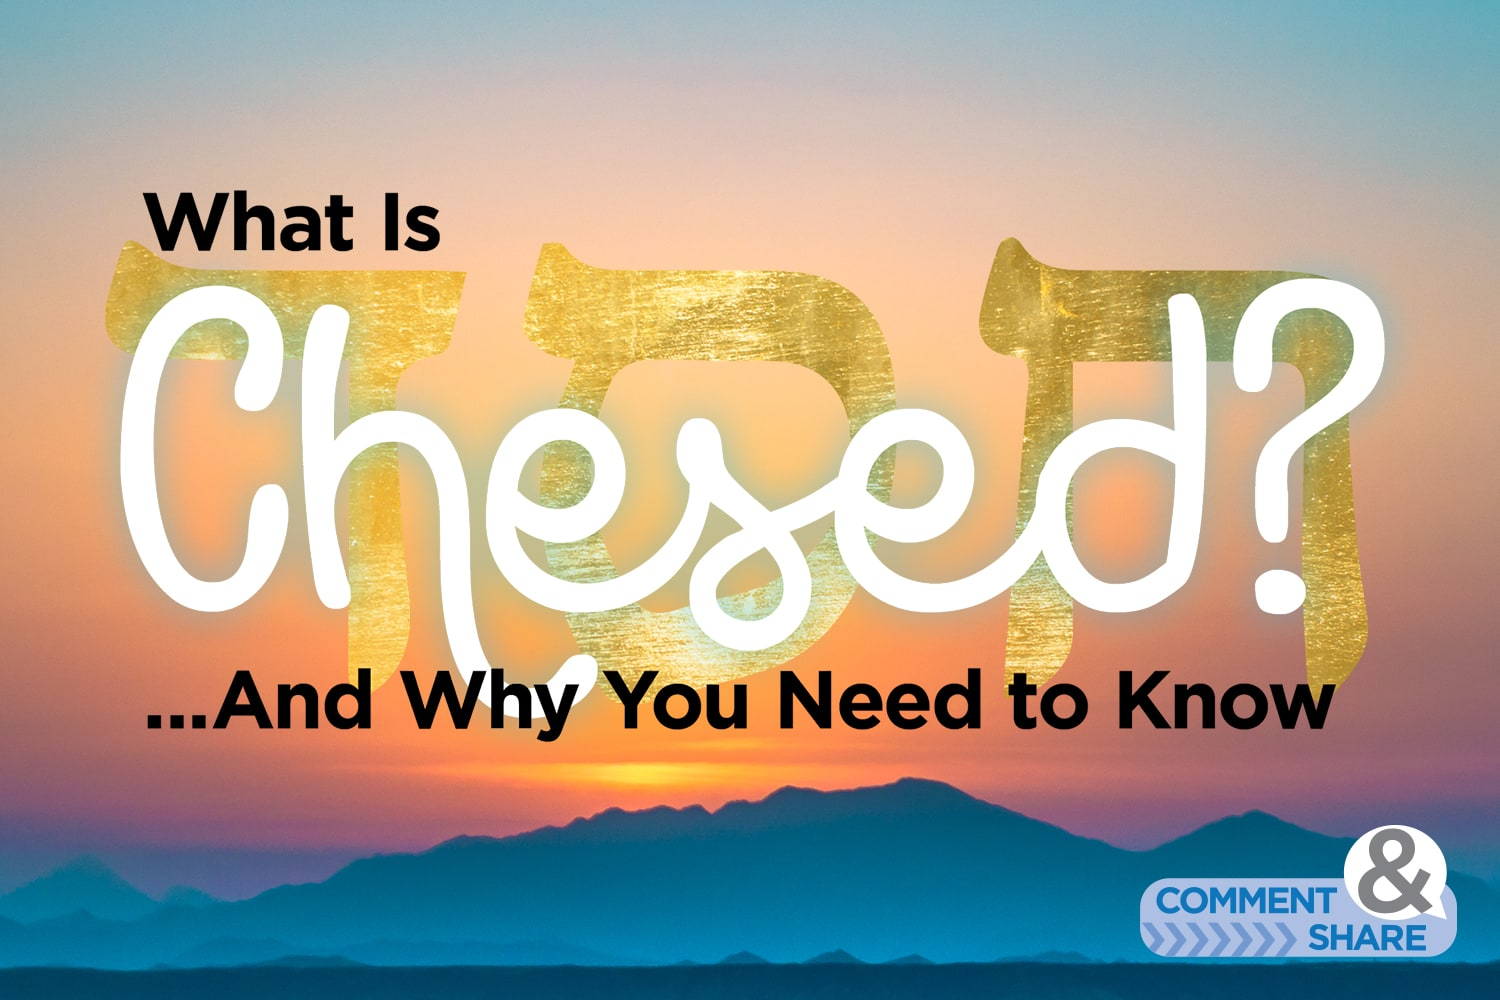 What Is Chesed?